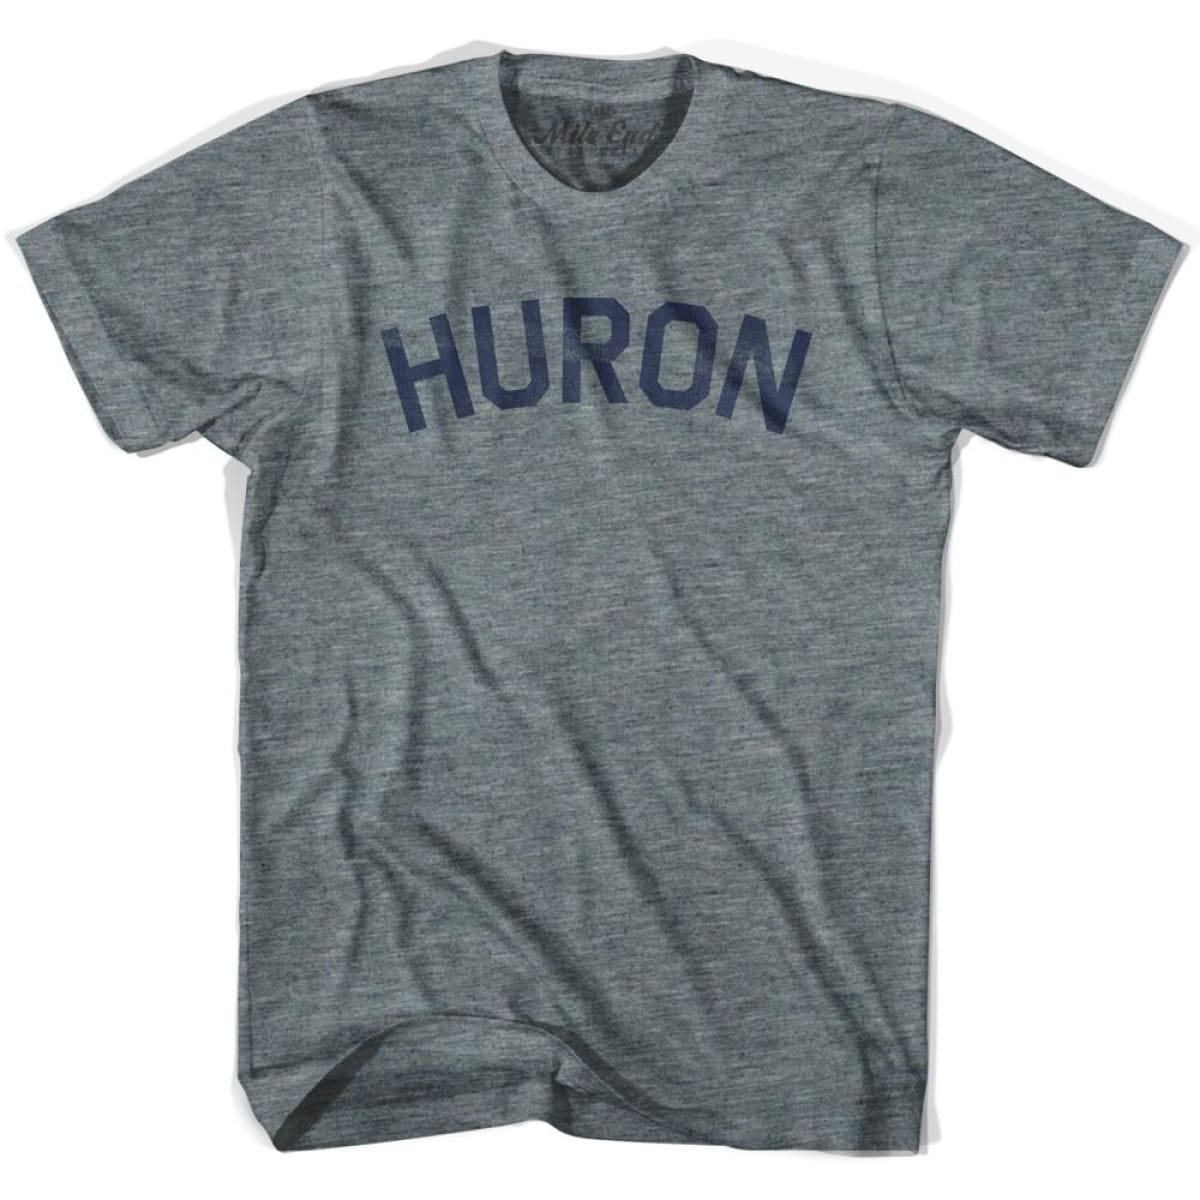 Huron City Vintage T-shirt - Athletic Grey / Adult X-Small - Mile End City